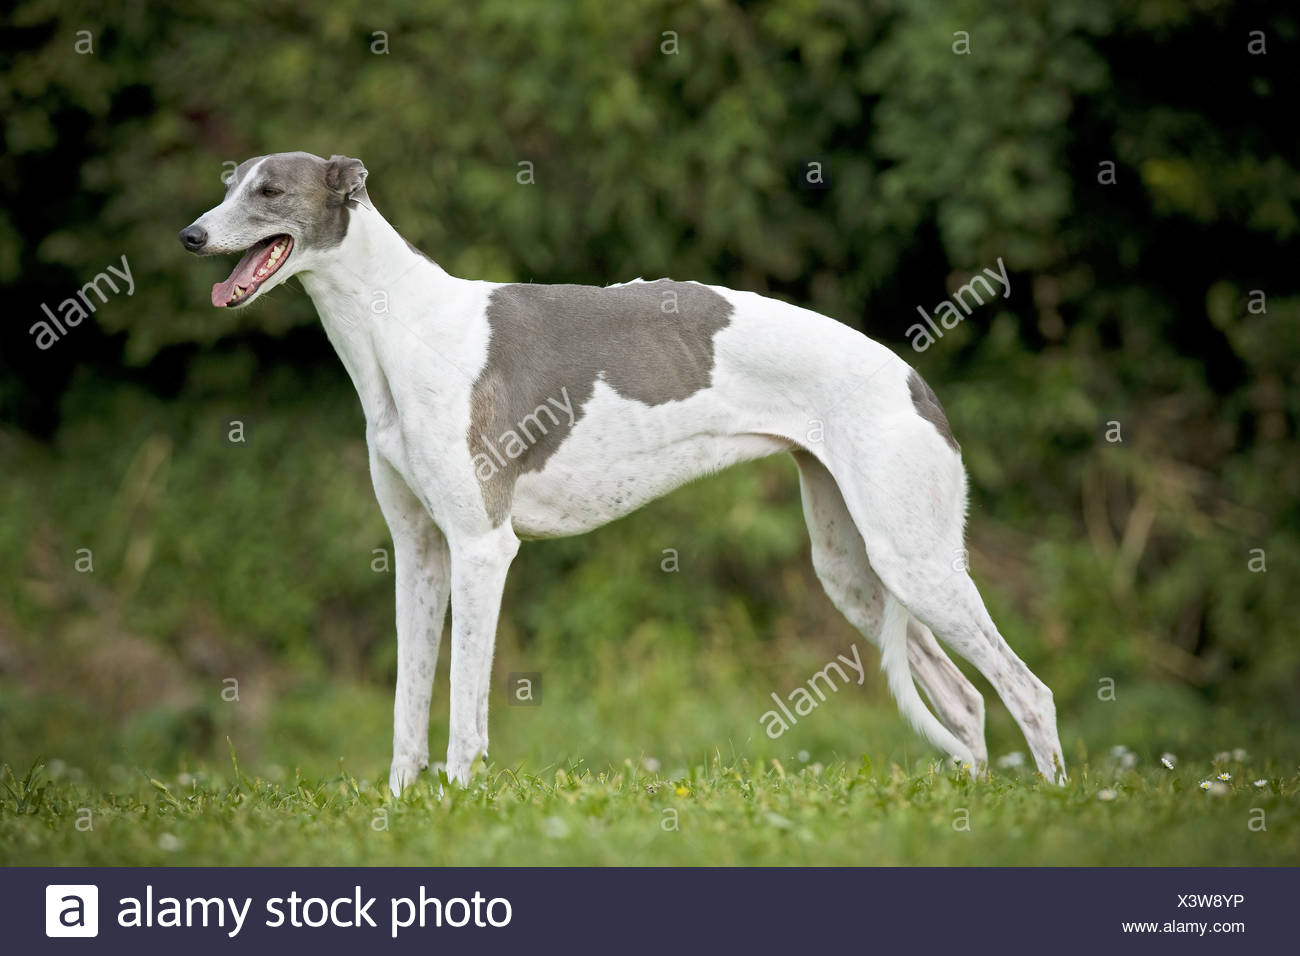 Greyhound dog - standing on meadow Stock Photo